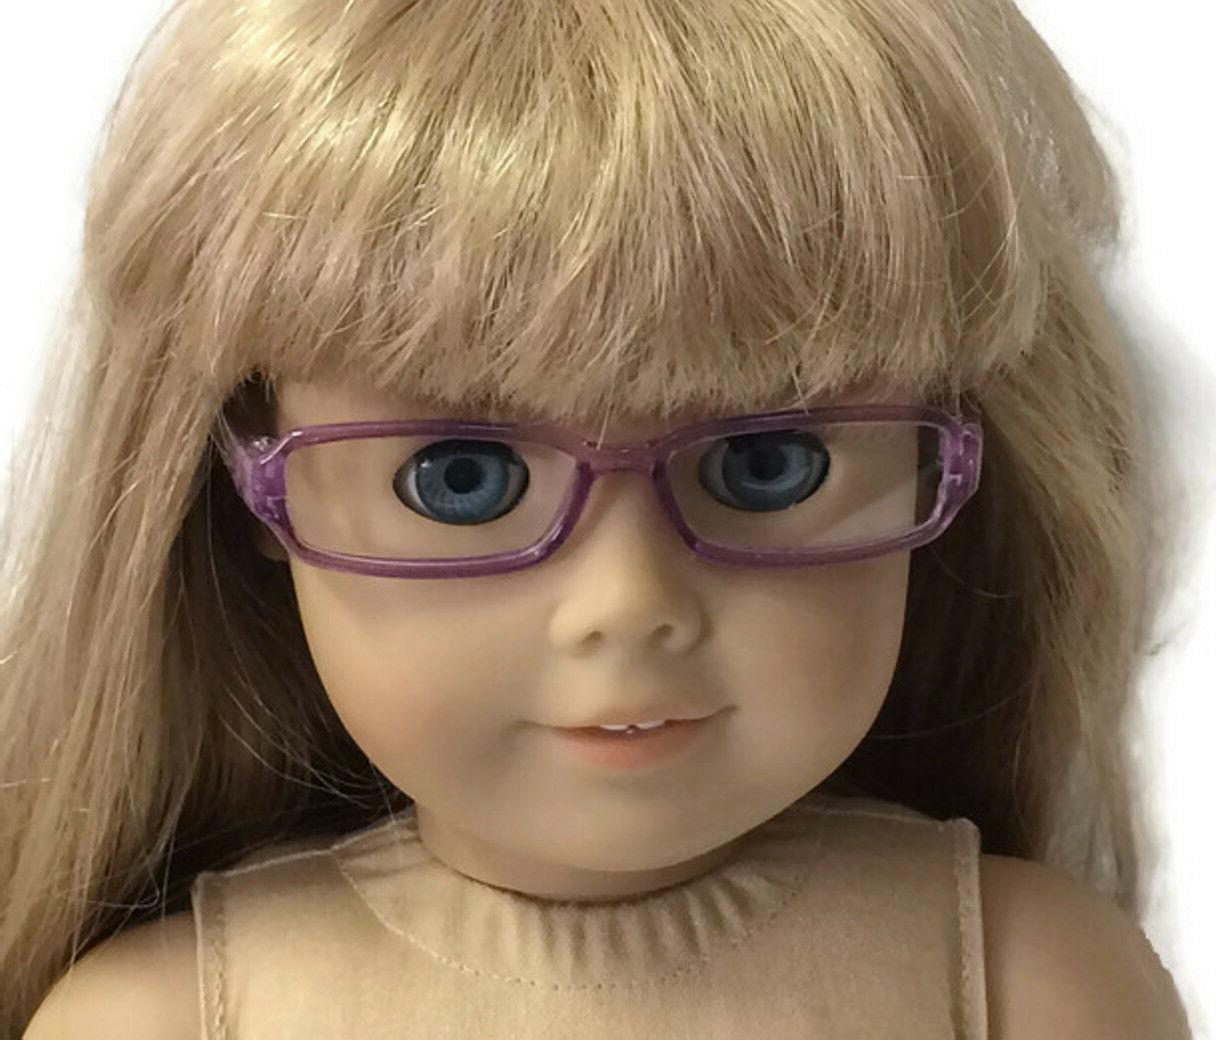 Purple Eye Glasses made Girl Doll Clothes